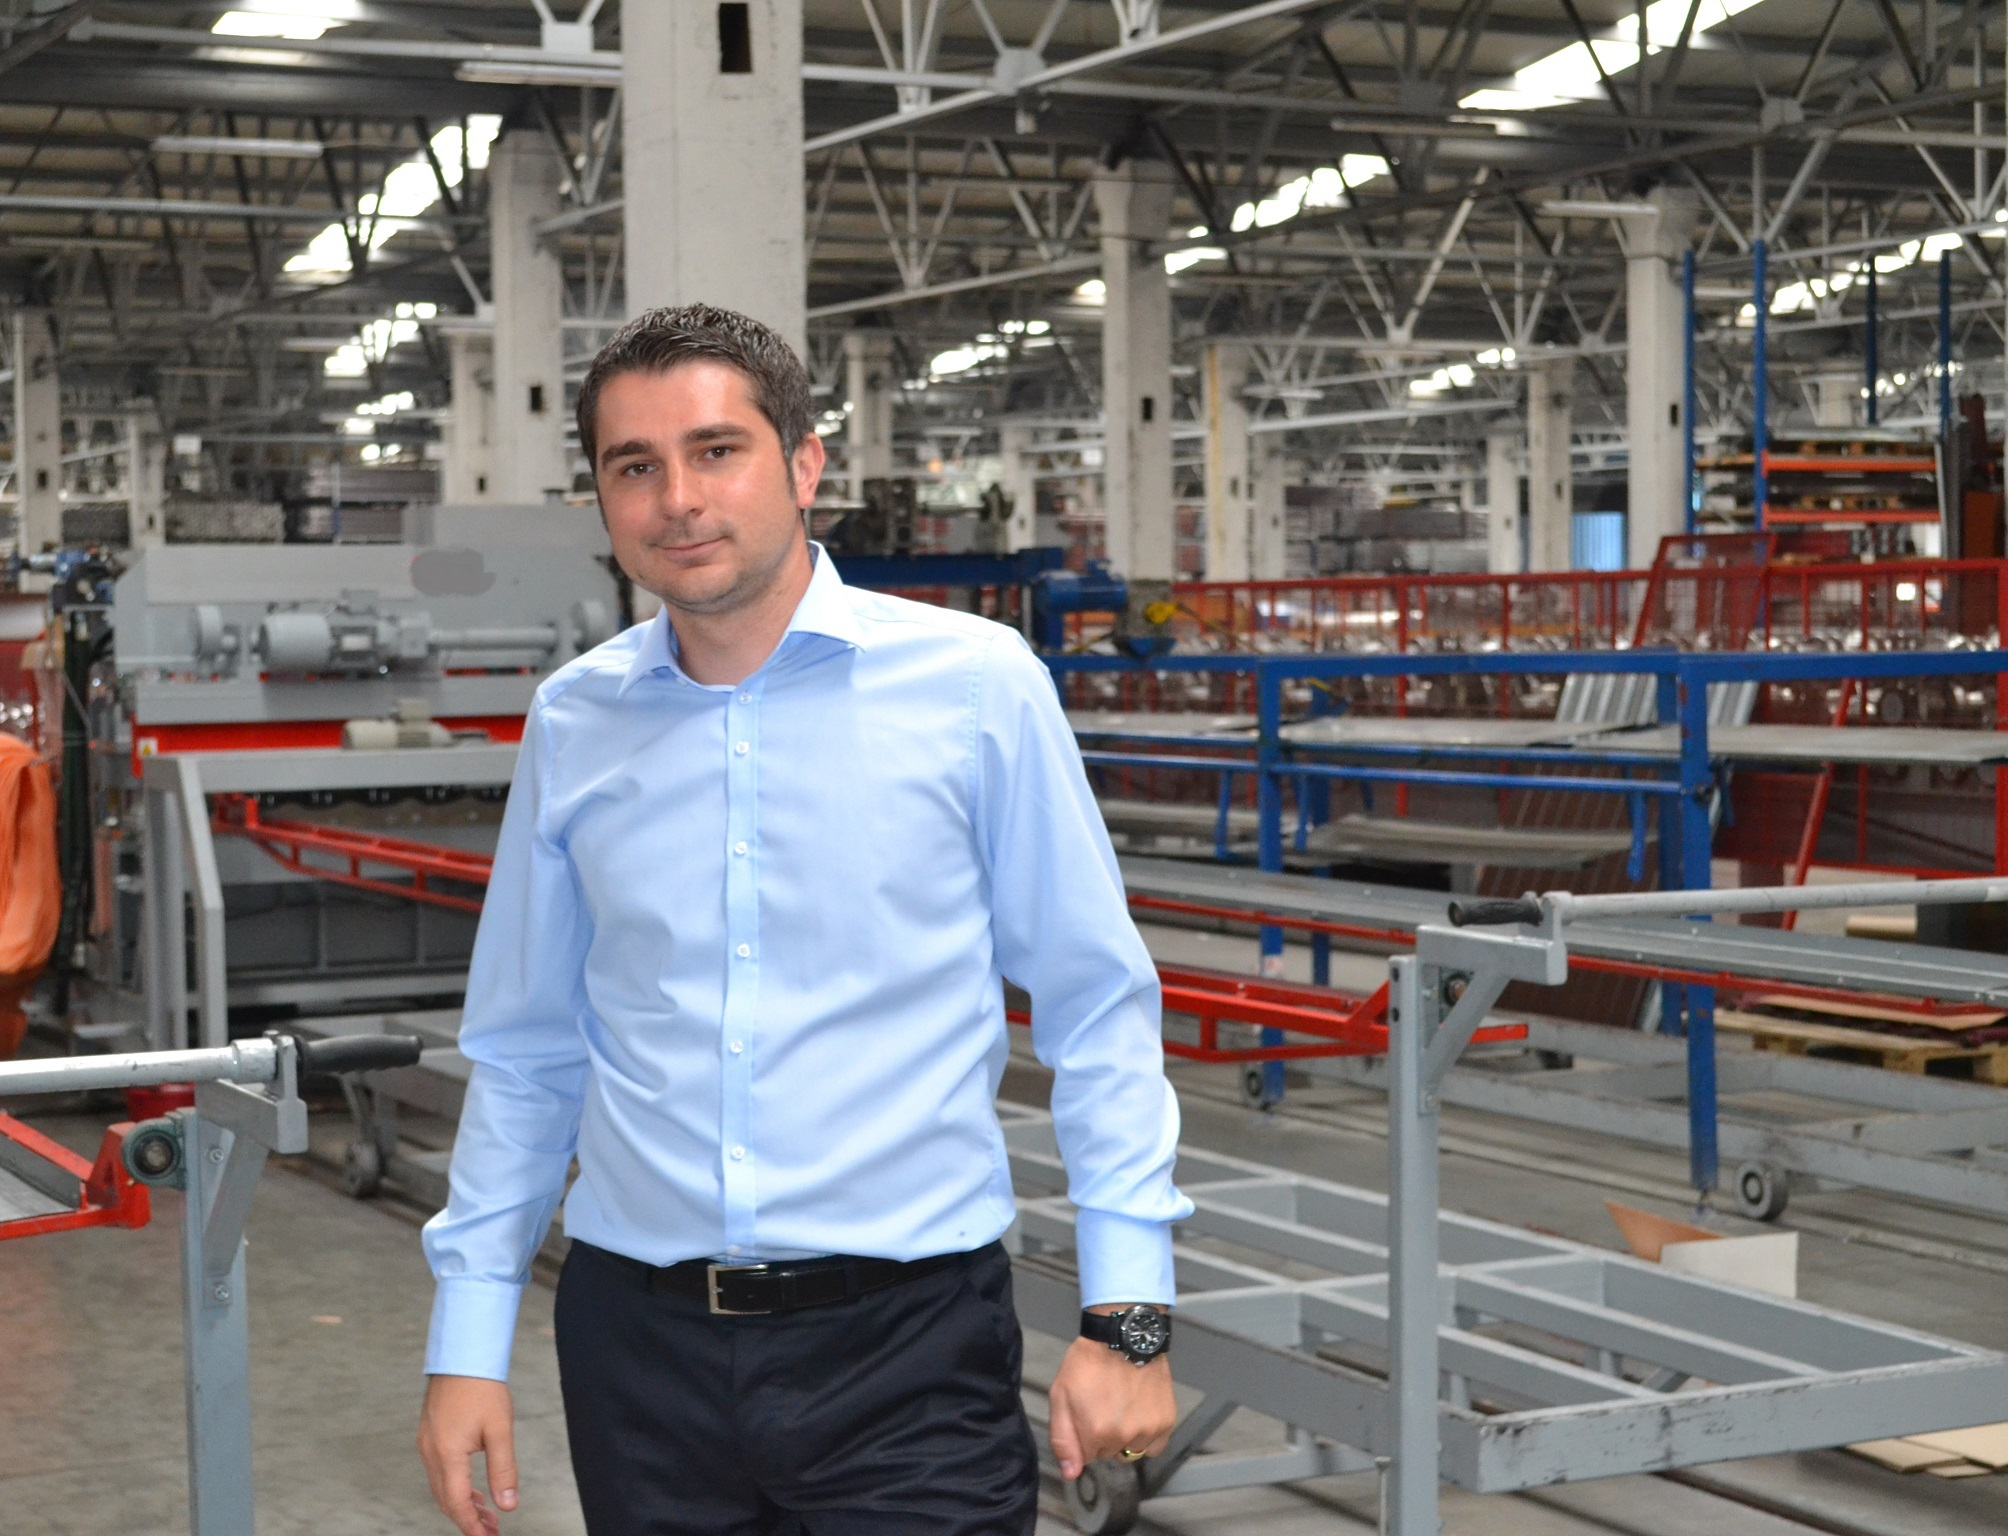 Horatiu Tepes